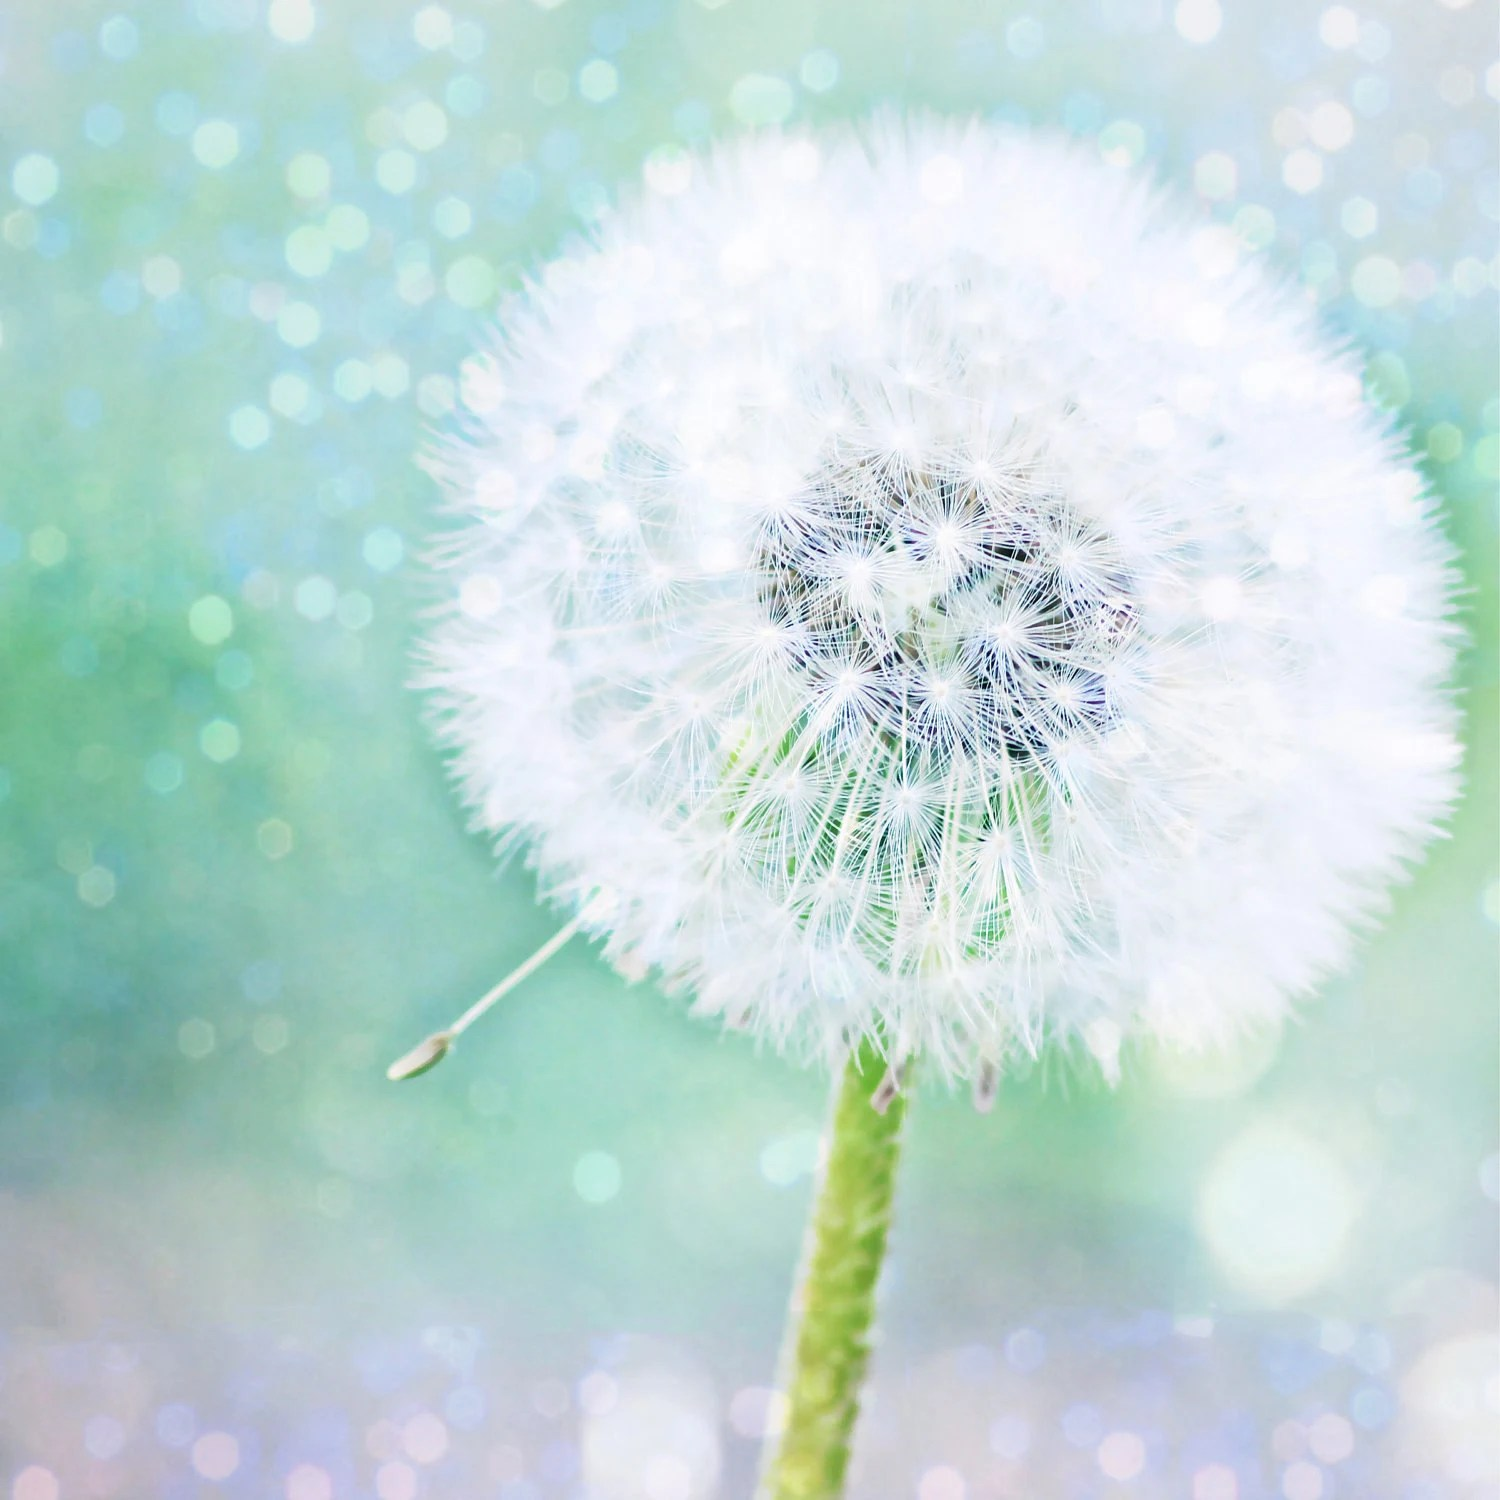 Nature Photography, ,aqua, white, Dandelion Dreams, nature fine art photography print 8x8 - moonlightphotography